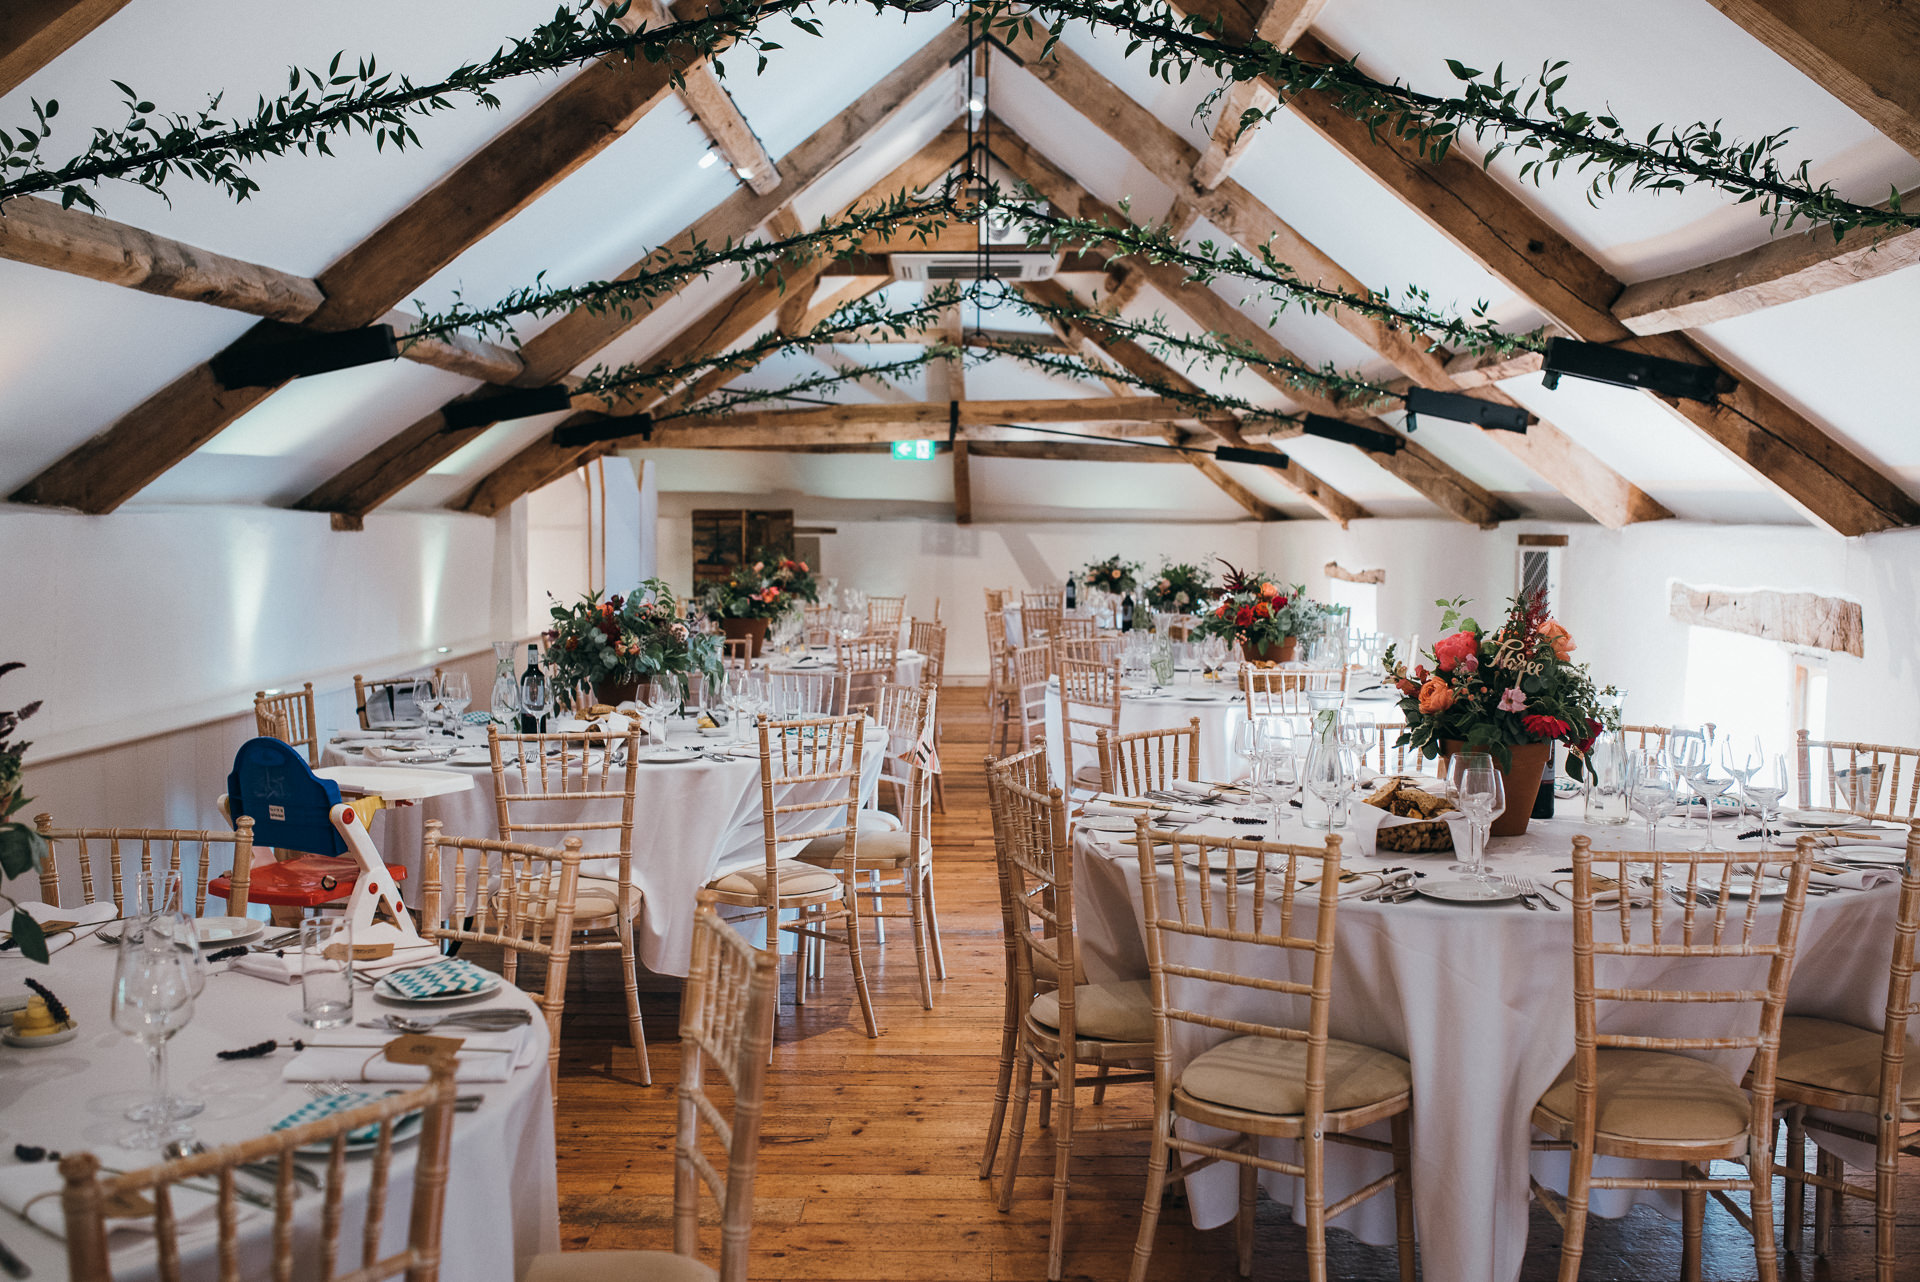 Pennard house wedding breakfast room